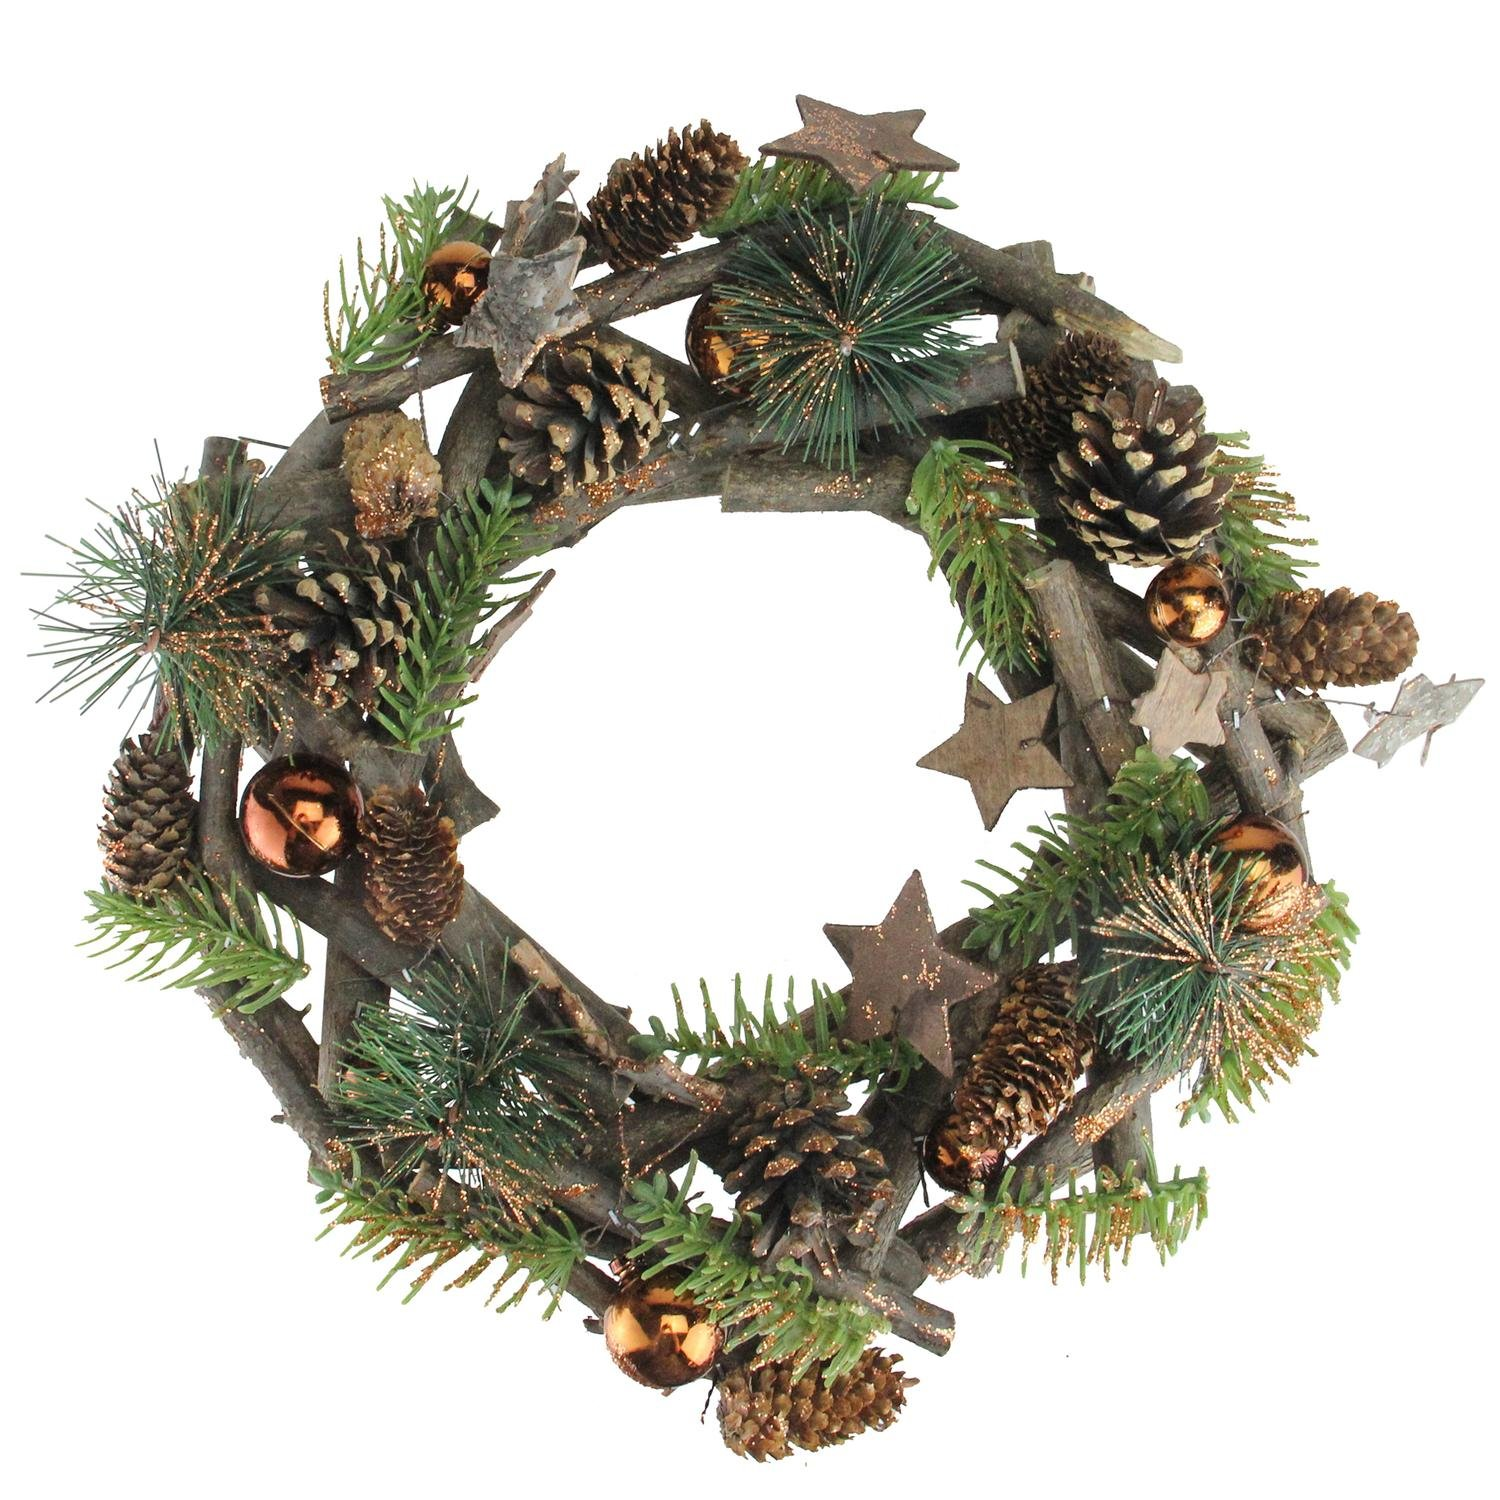 Northlight SH01778 Stars and Ornaments Twig Christmas Wreath, 12''